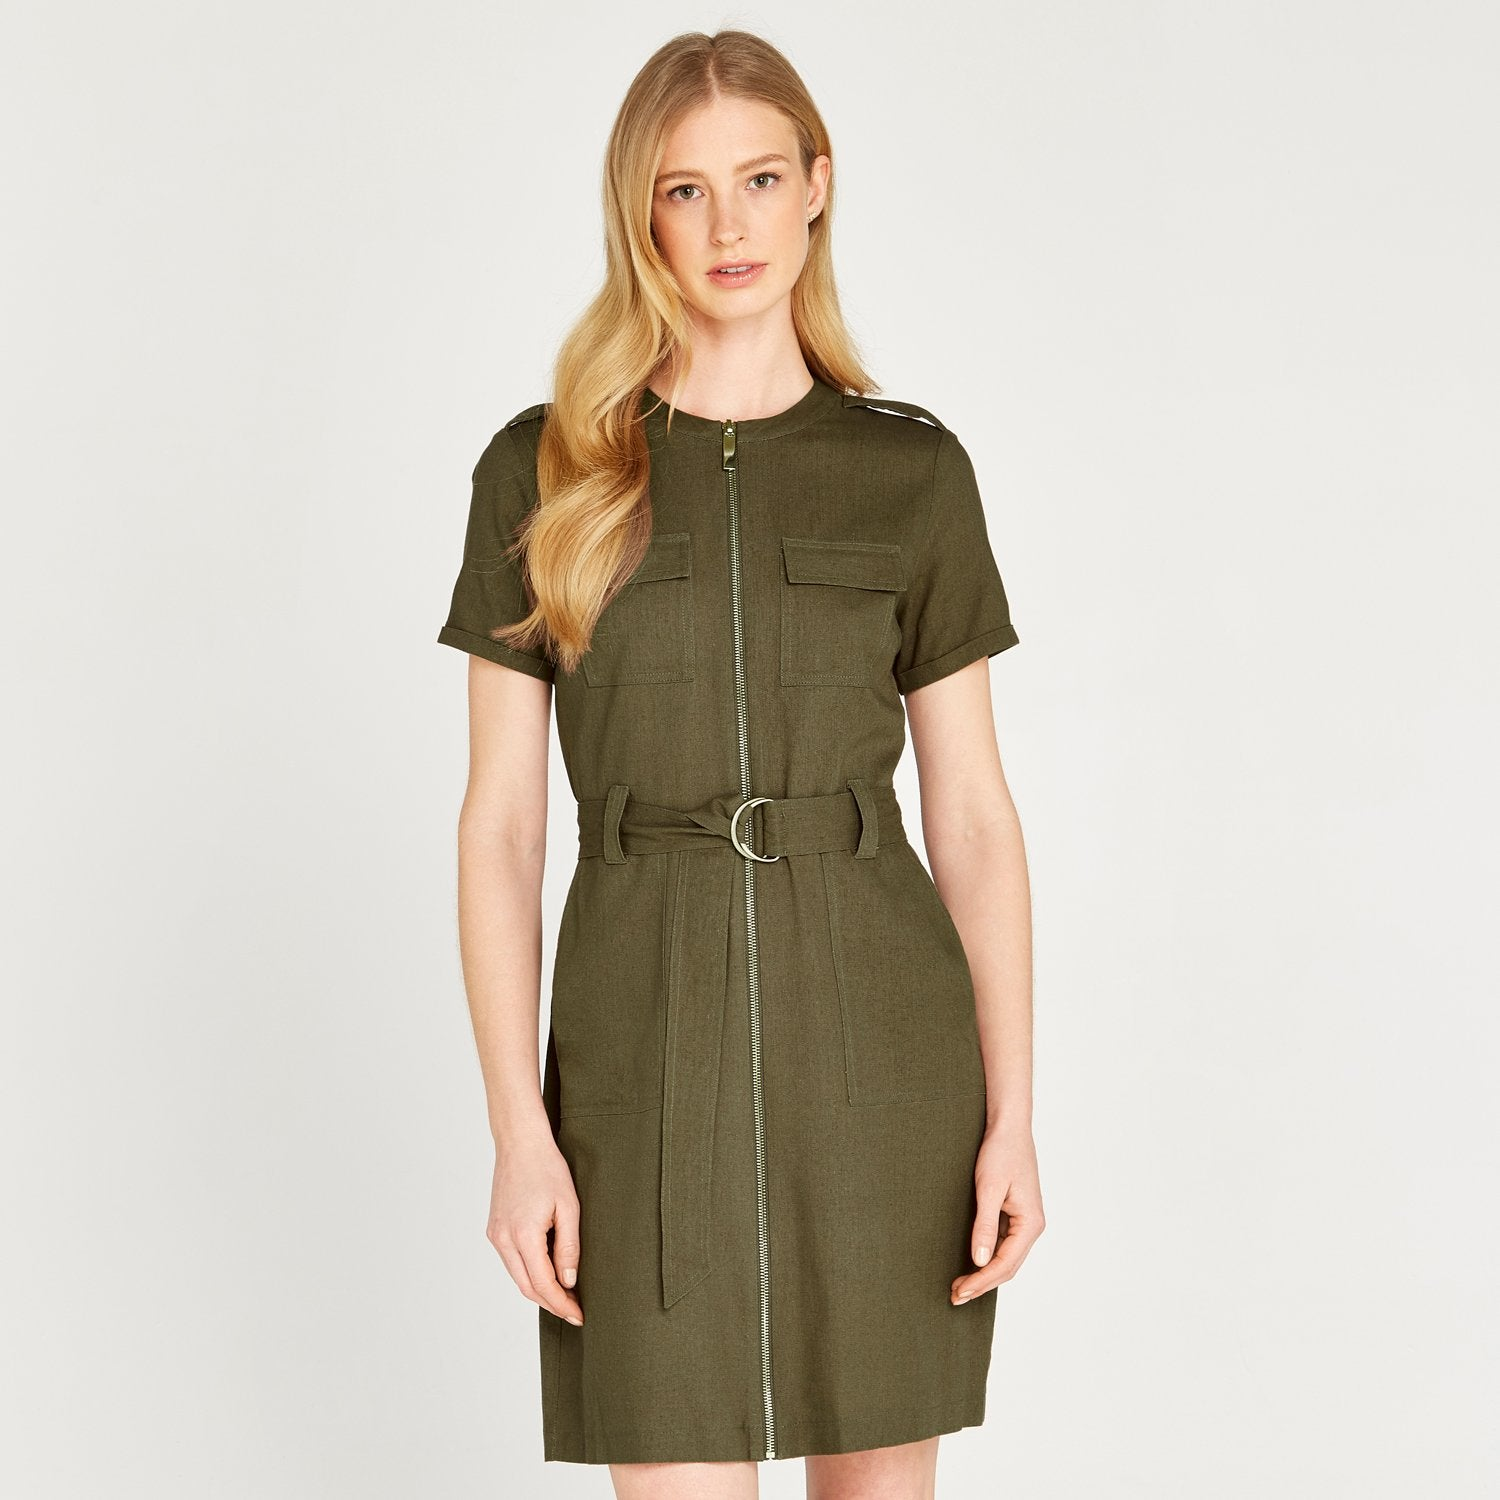 Apricot women dress khaki 448322